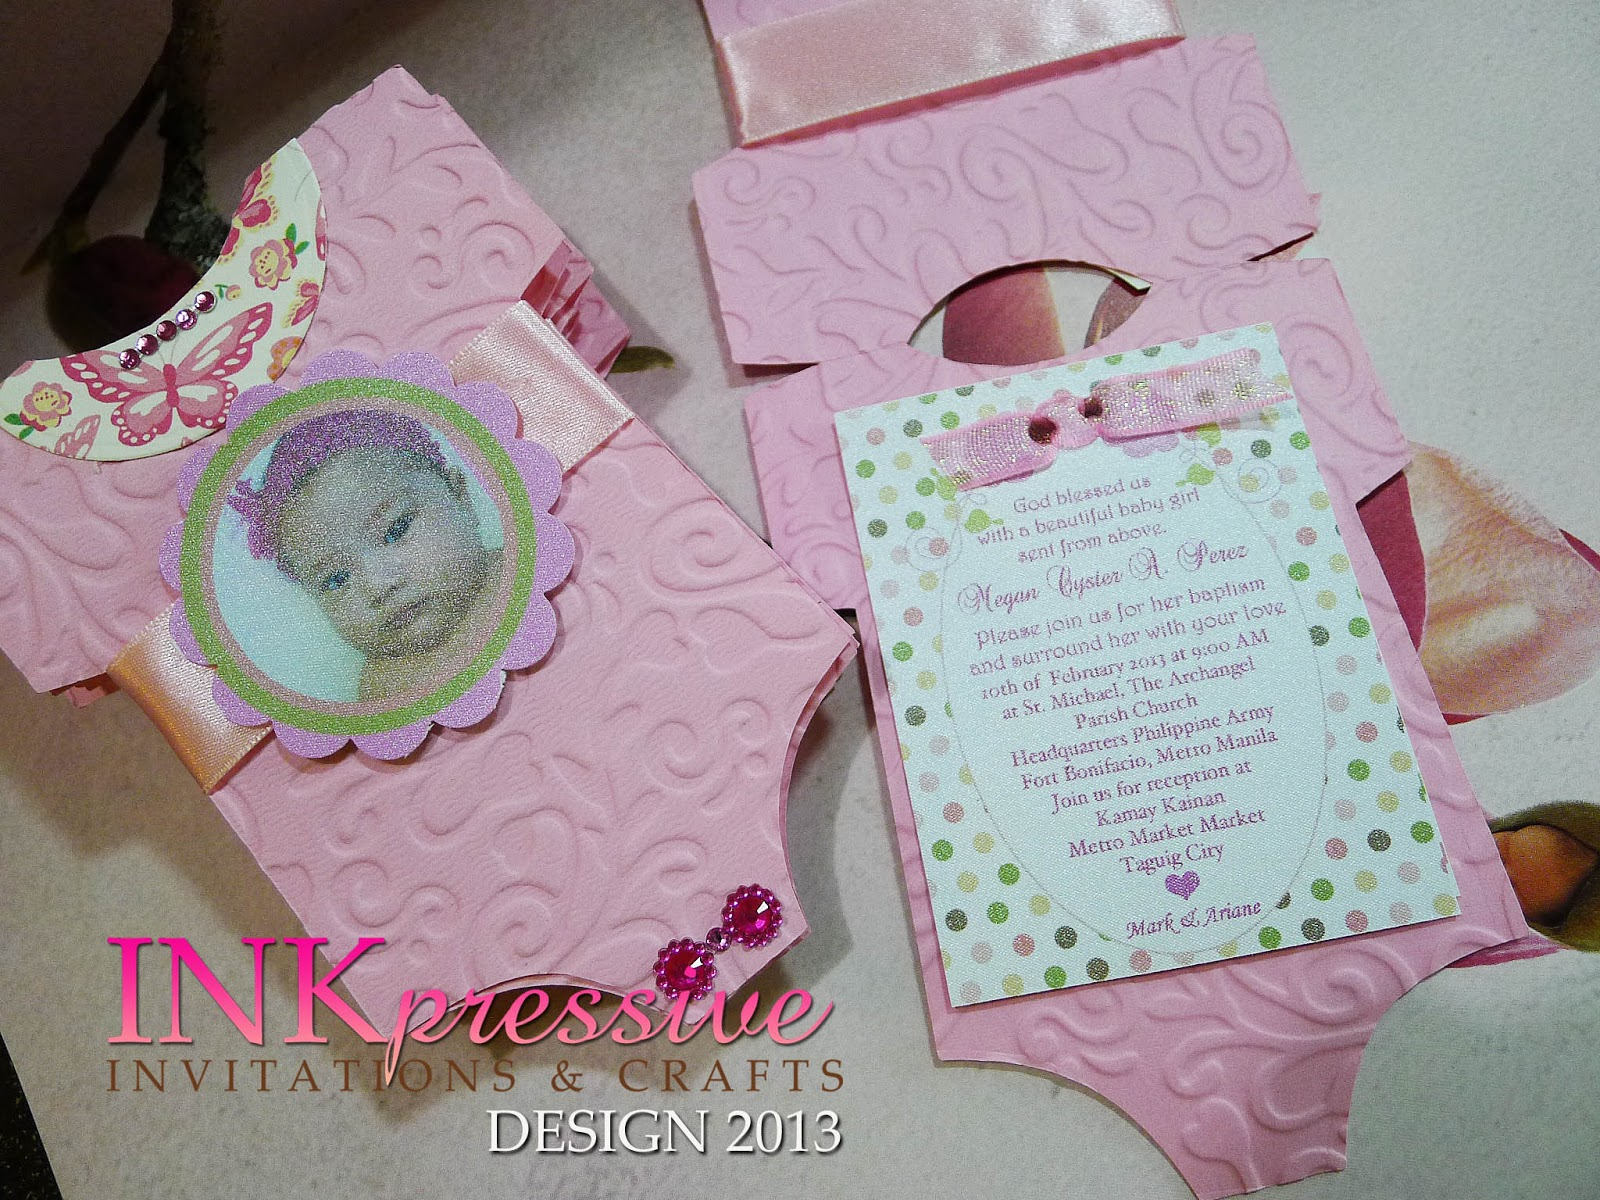 Inkpressive invitations june 2013 pink baby onesie baptism invitation solutioingenieria Gallery